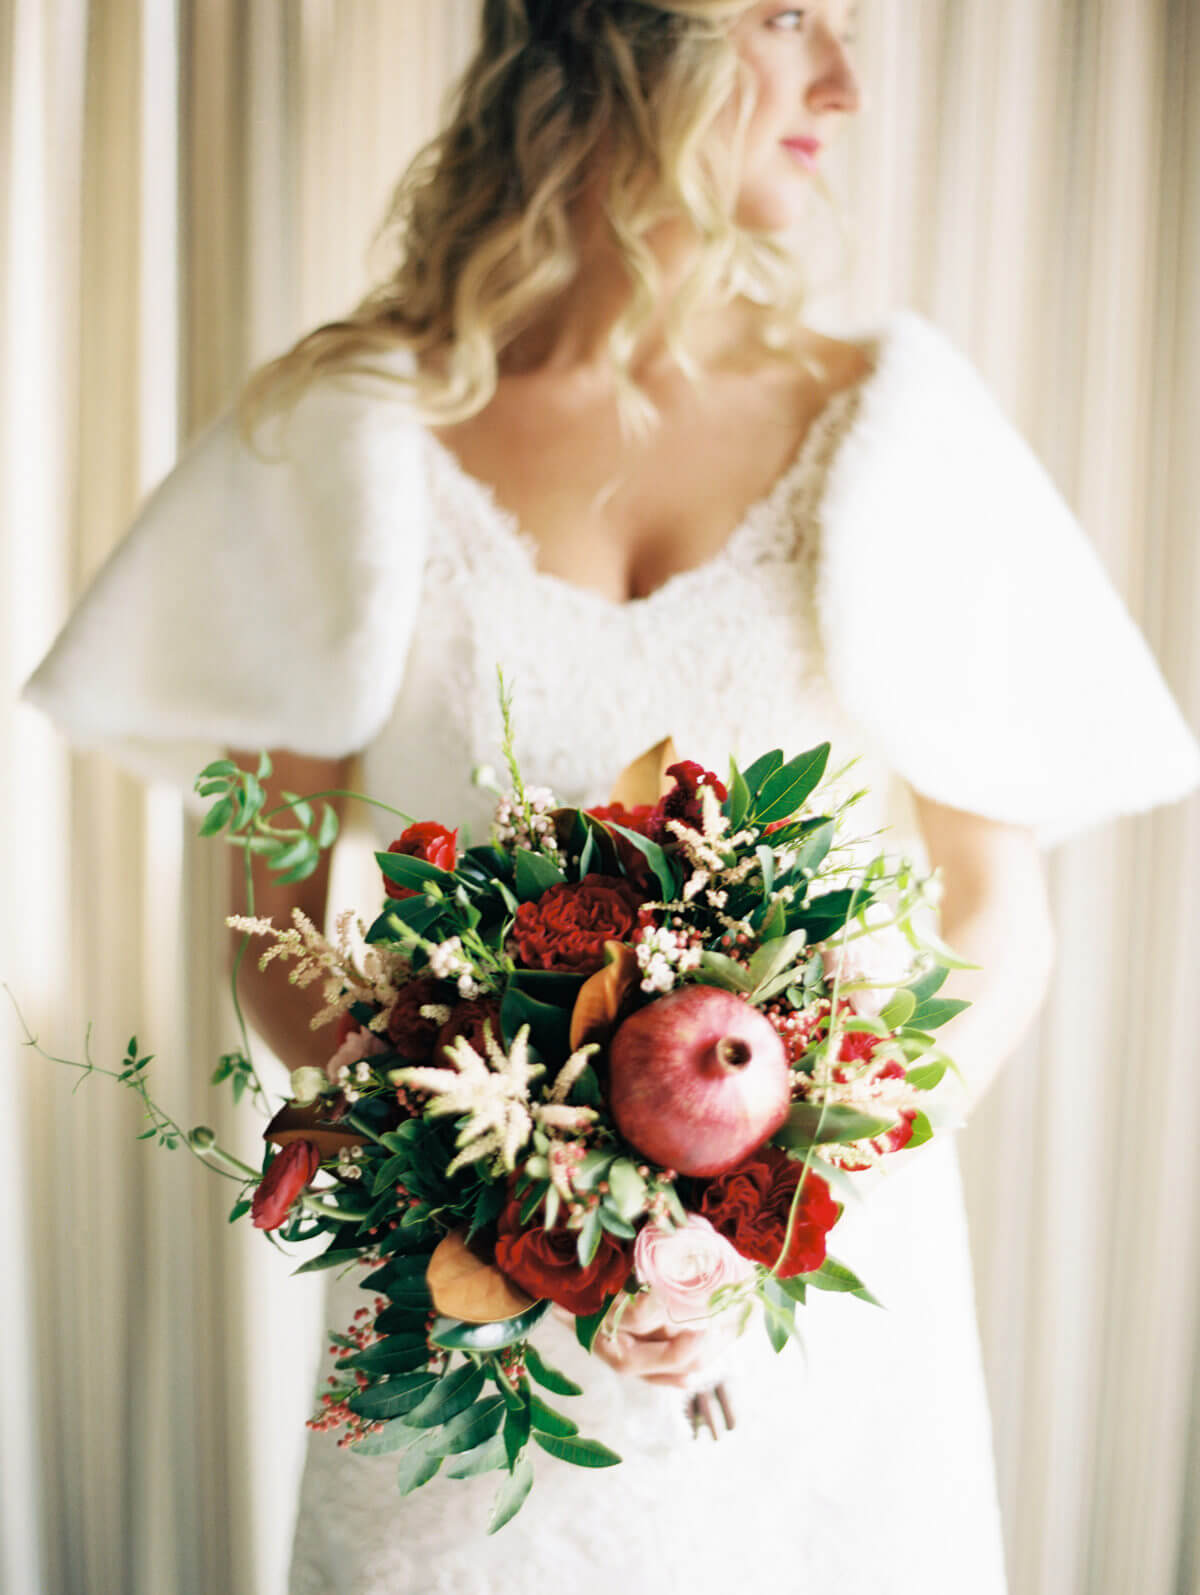 Bride holding winter flowers